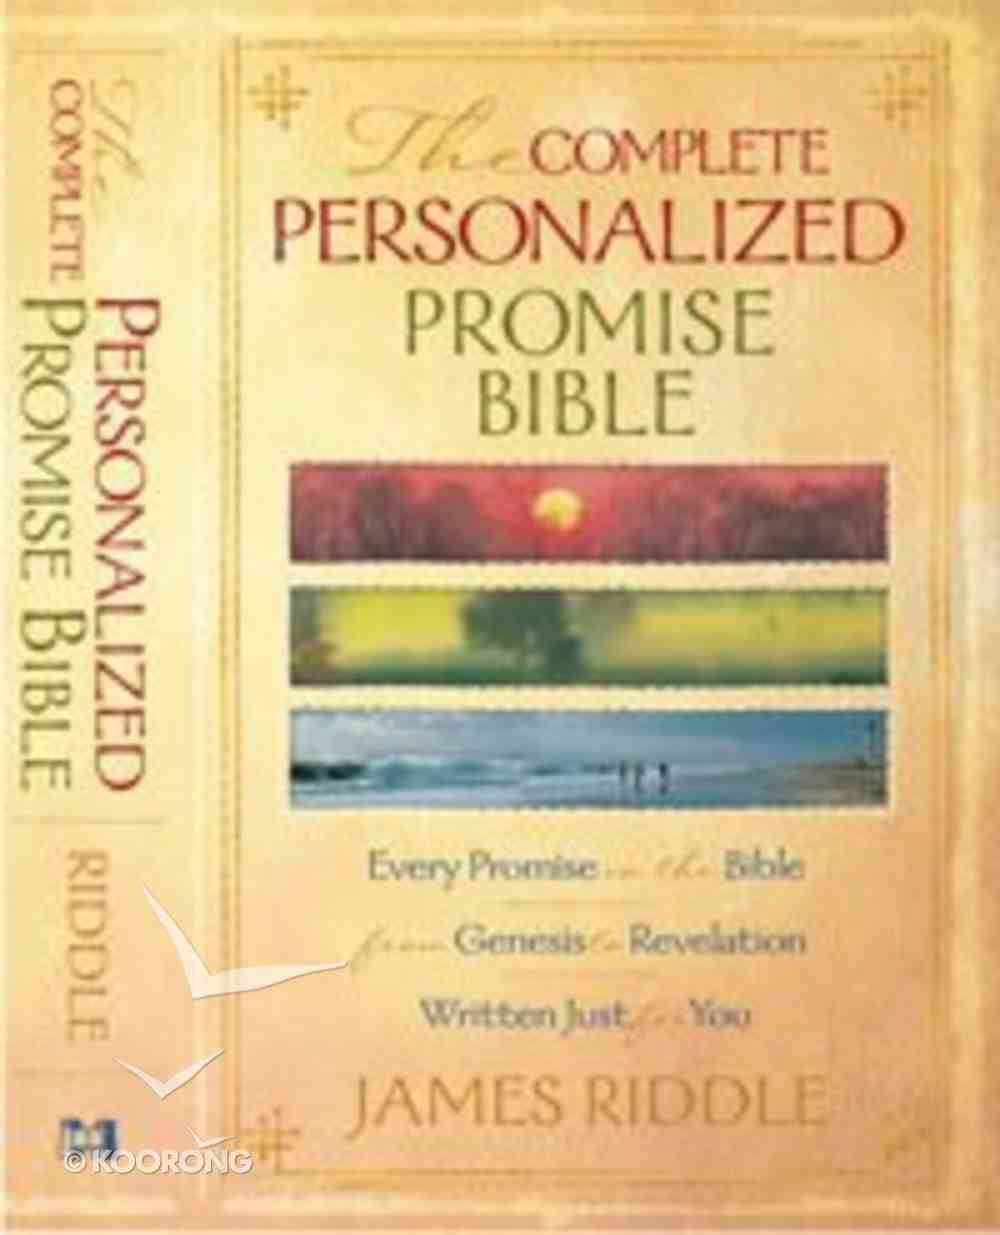 The Complete Personalized Promise Bible Hardback